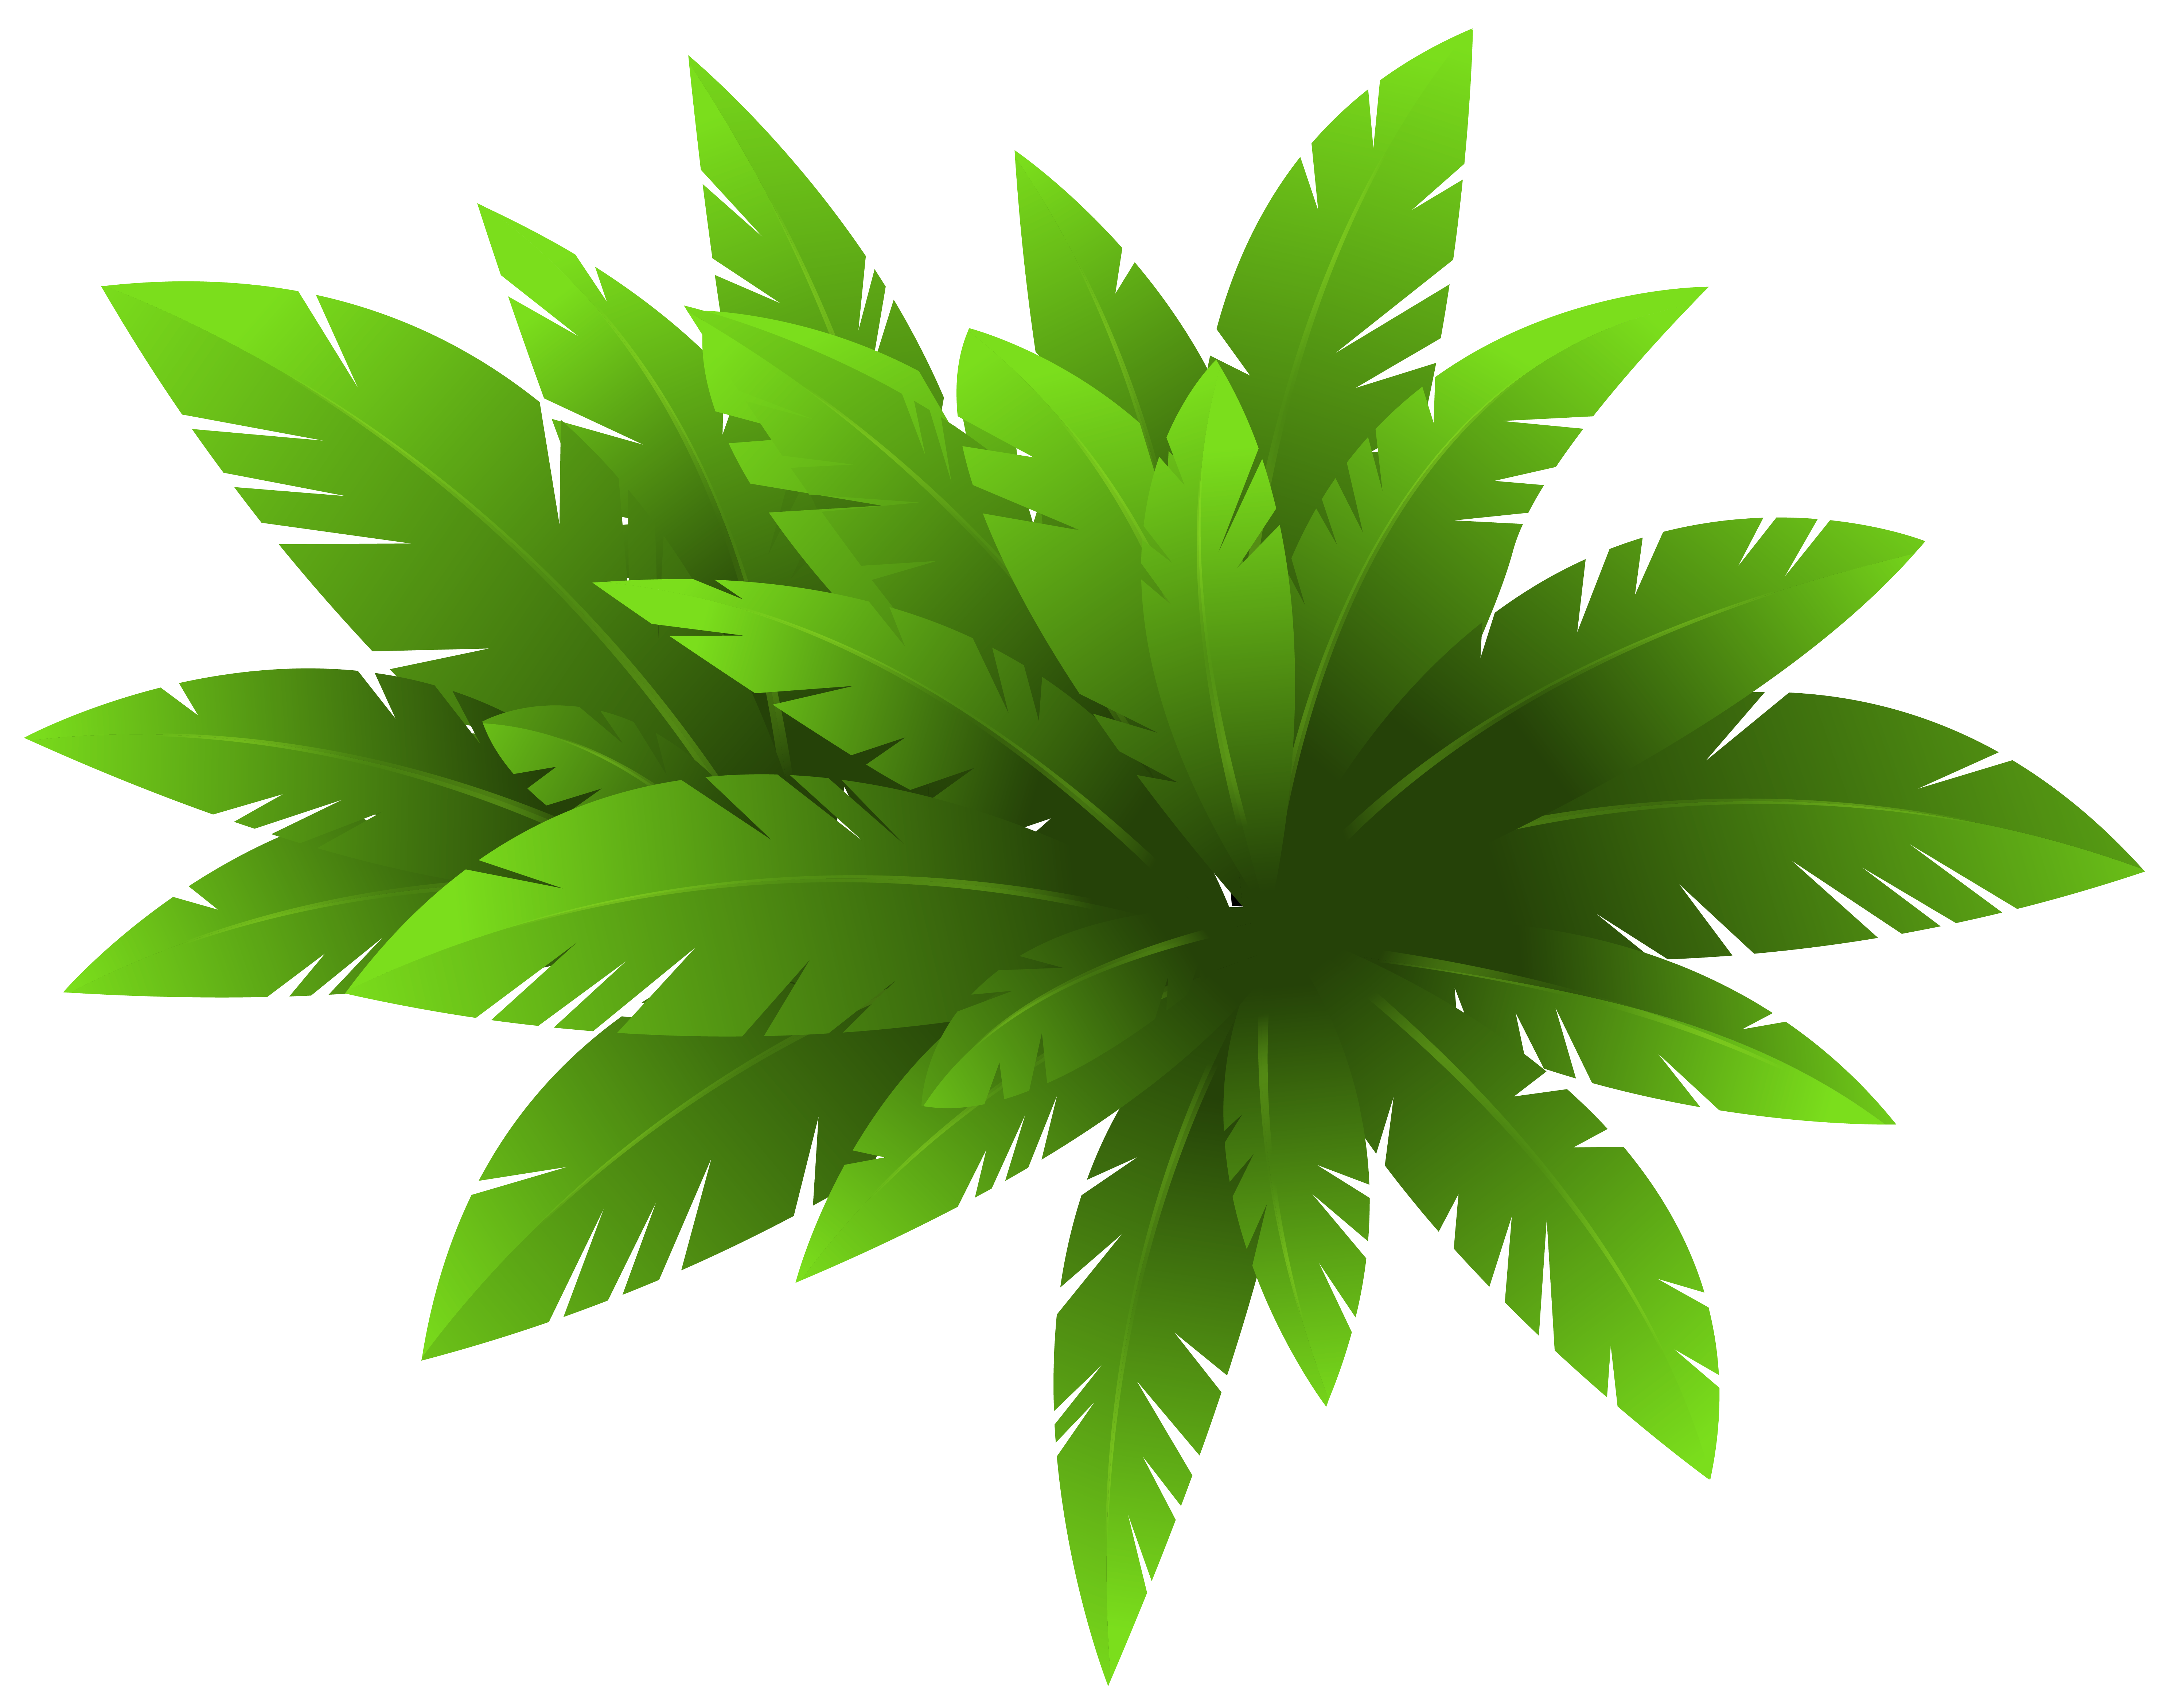 Plant clipart green plant. Decoration png image gallery